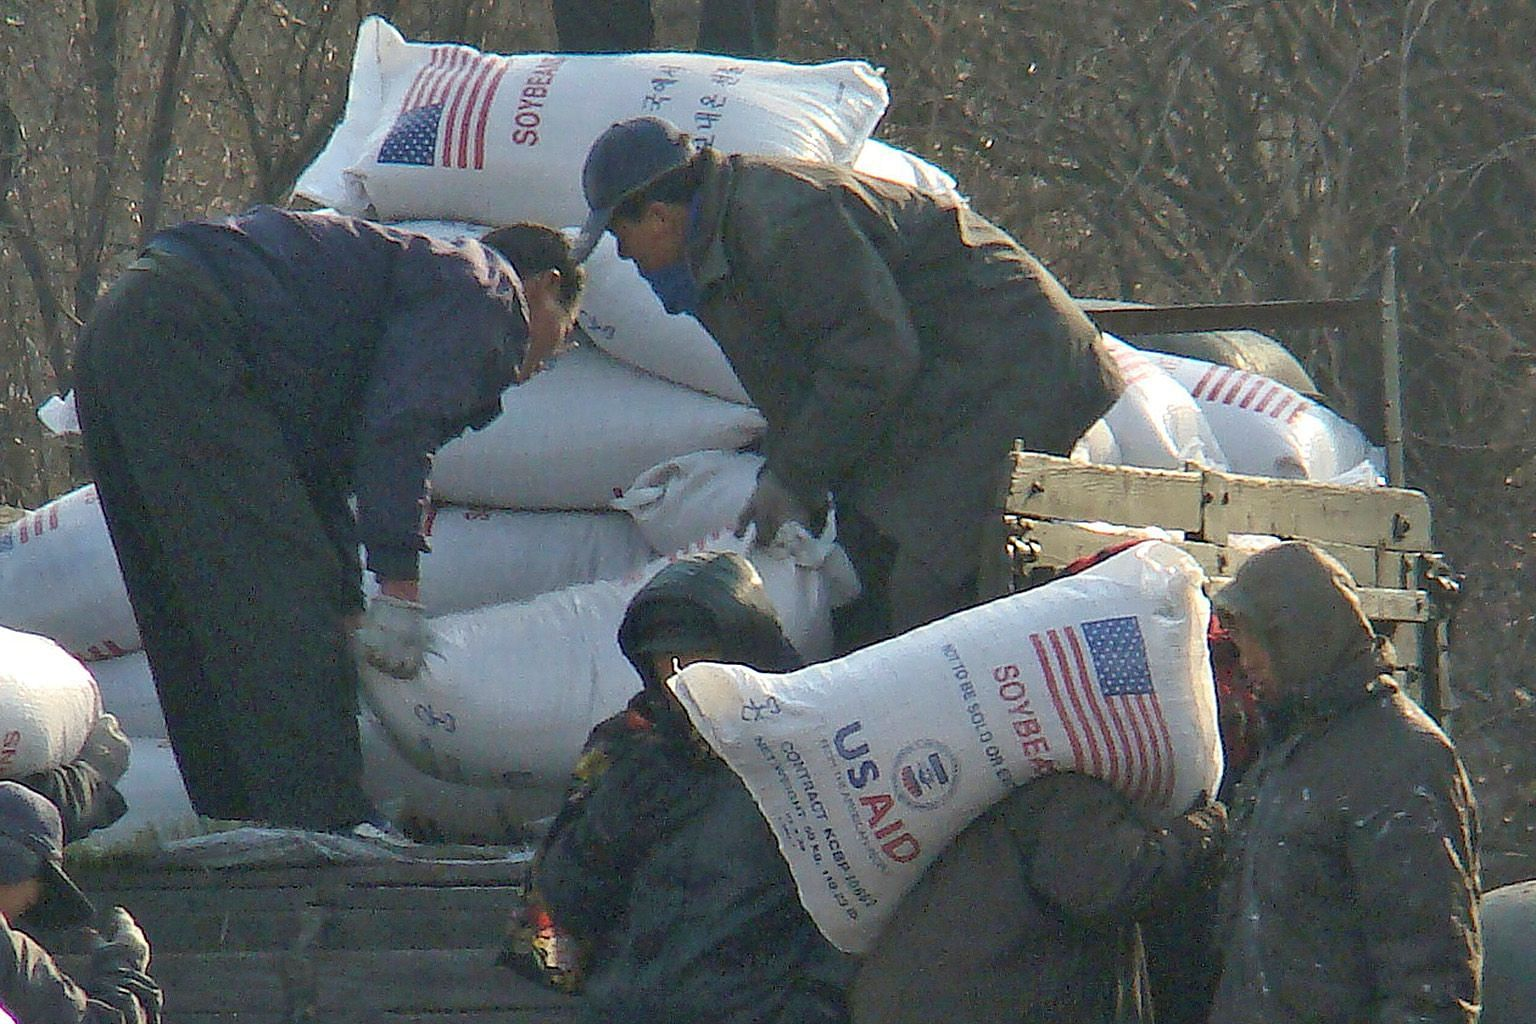 Workers unloading food aid in the Sinuiju region of North Korea in2008. The latest moves by the Trump administration seek to tighten sanctions as part of its maximum-pressure campaign during nuclear negotiations.